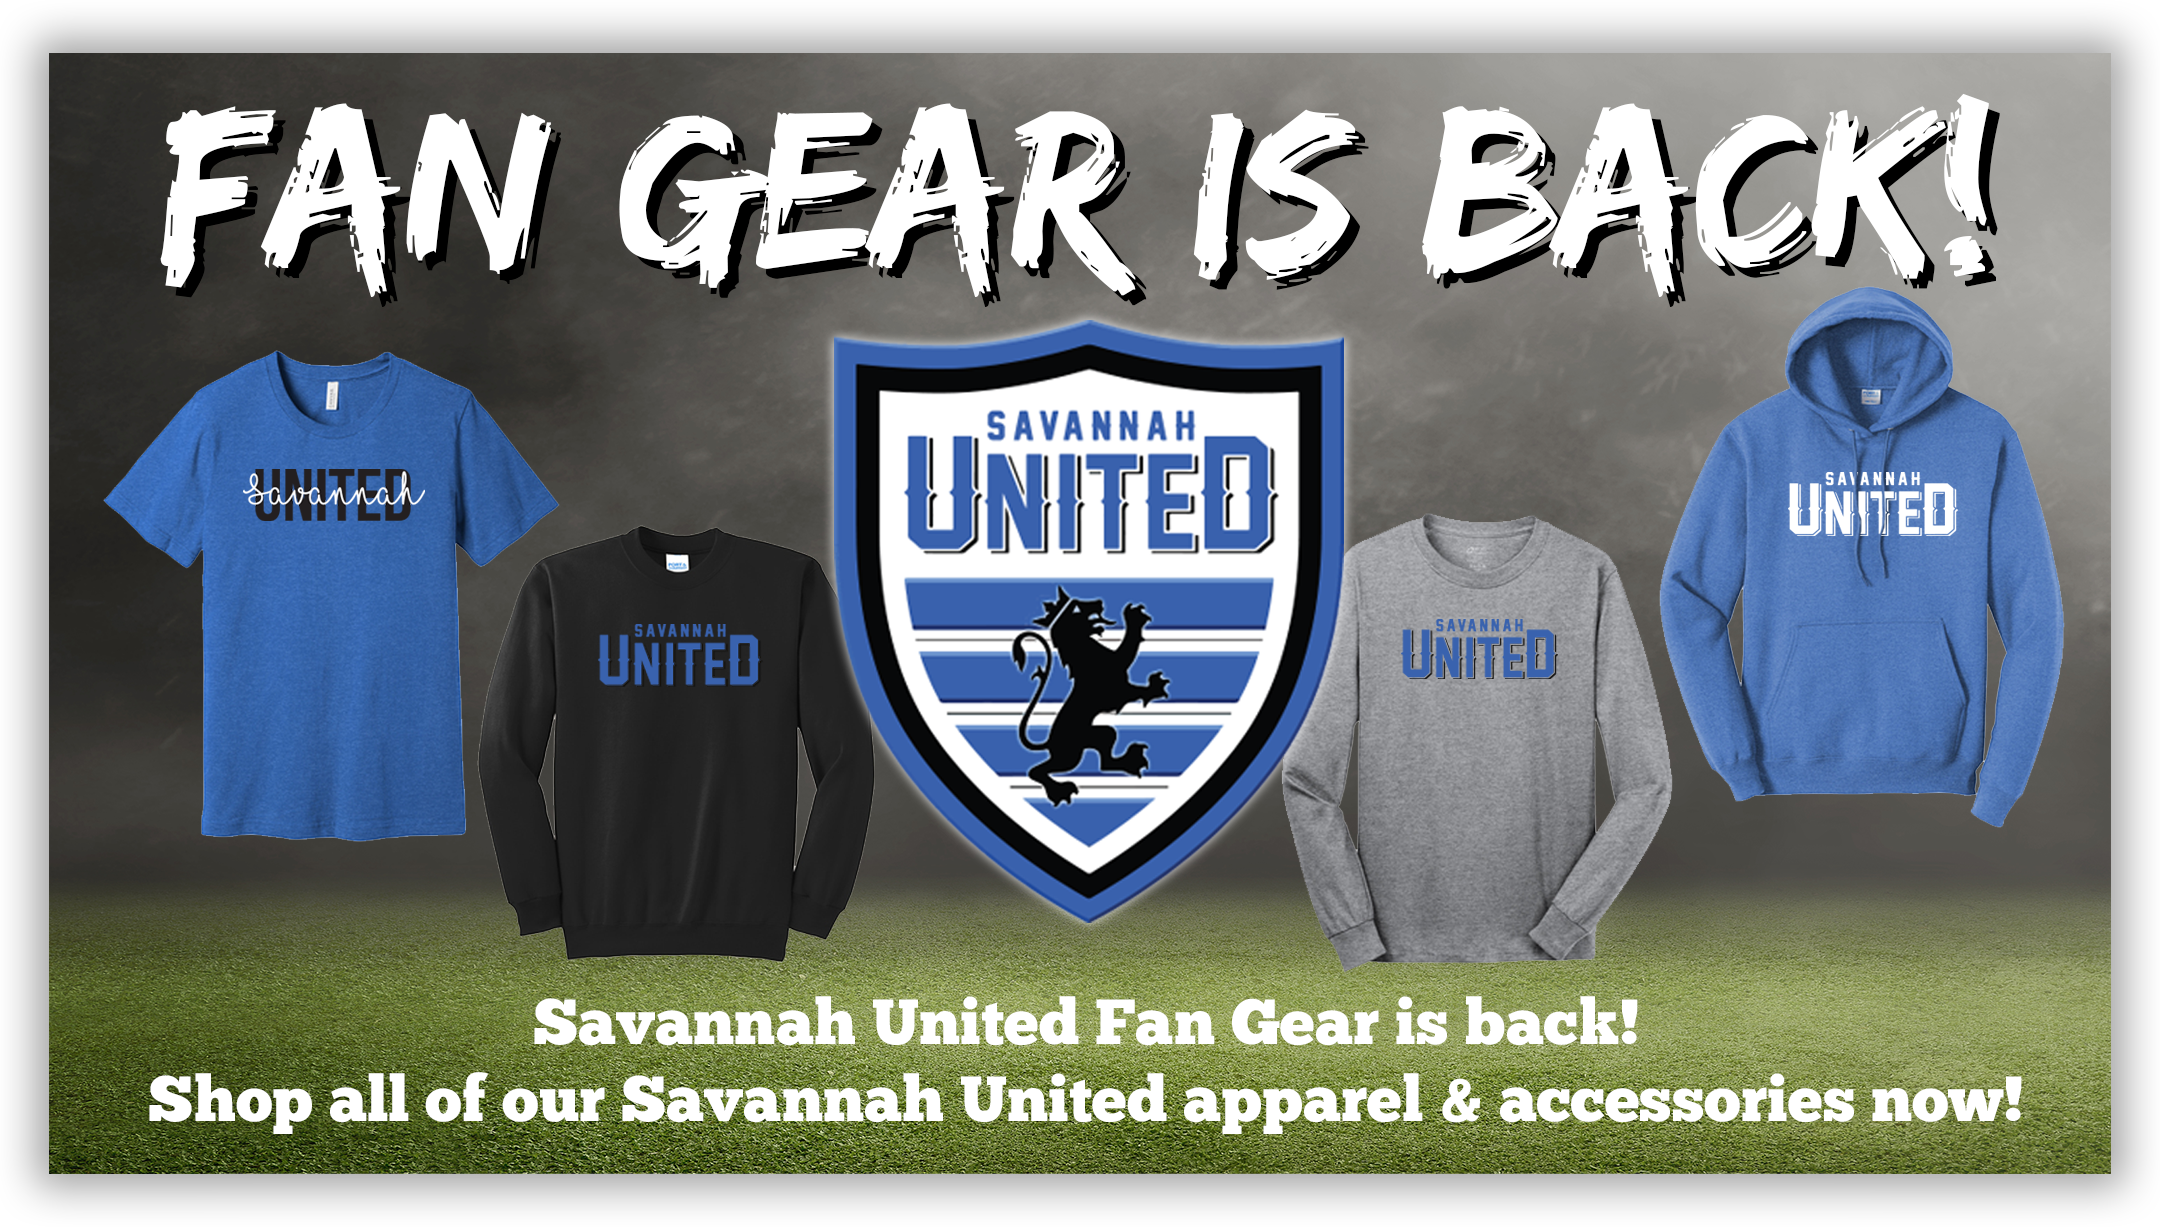 Savannah United Fan Gear